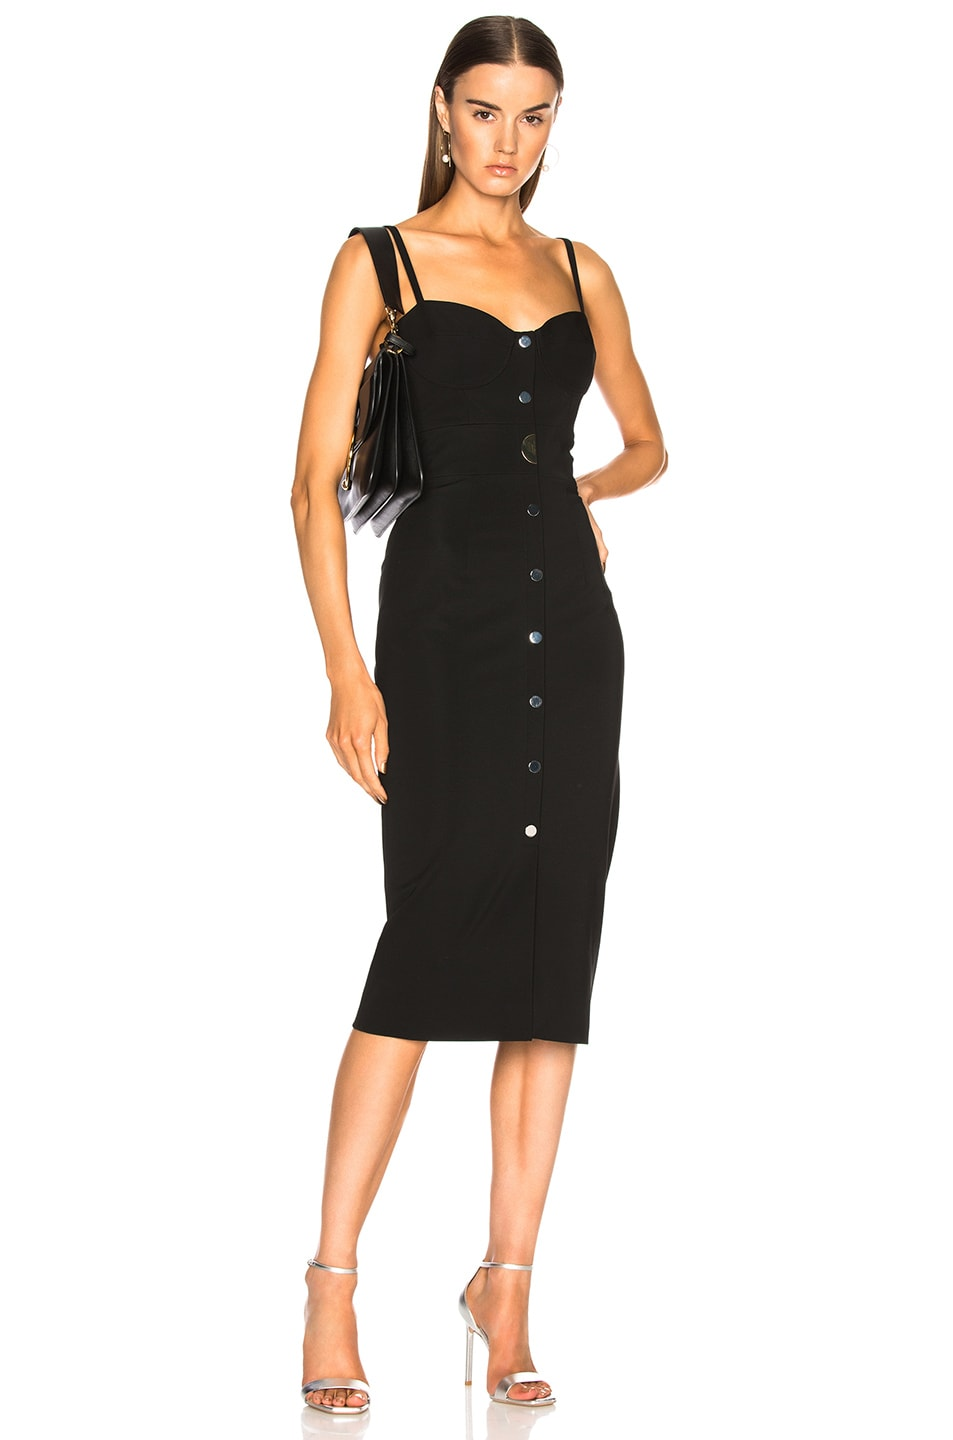 Cushnie et Ochs Ellis Dress in Black